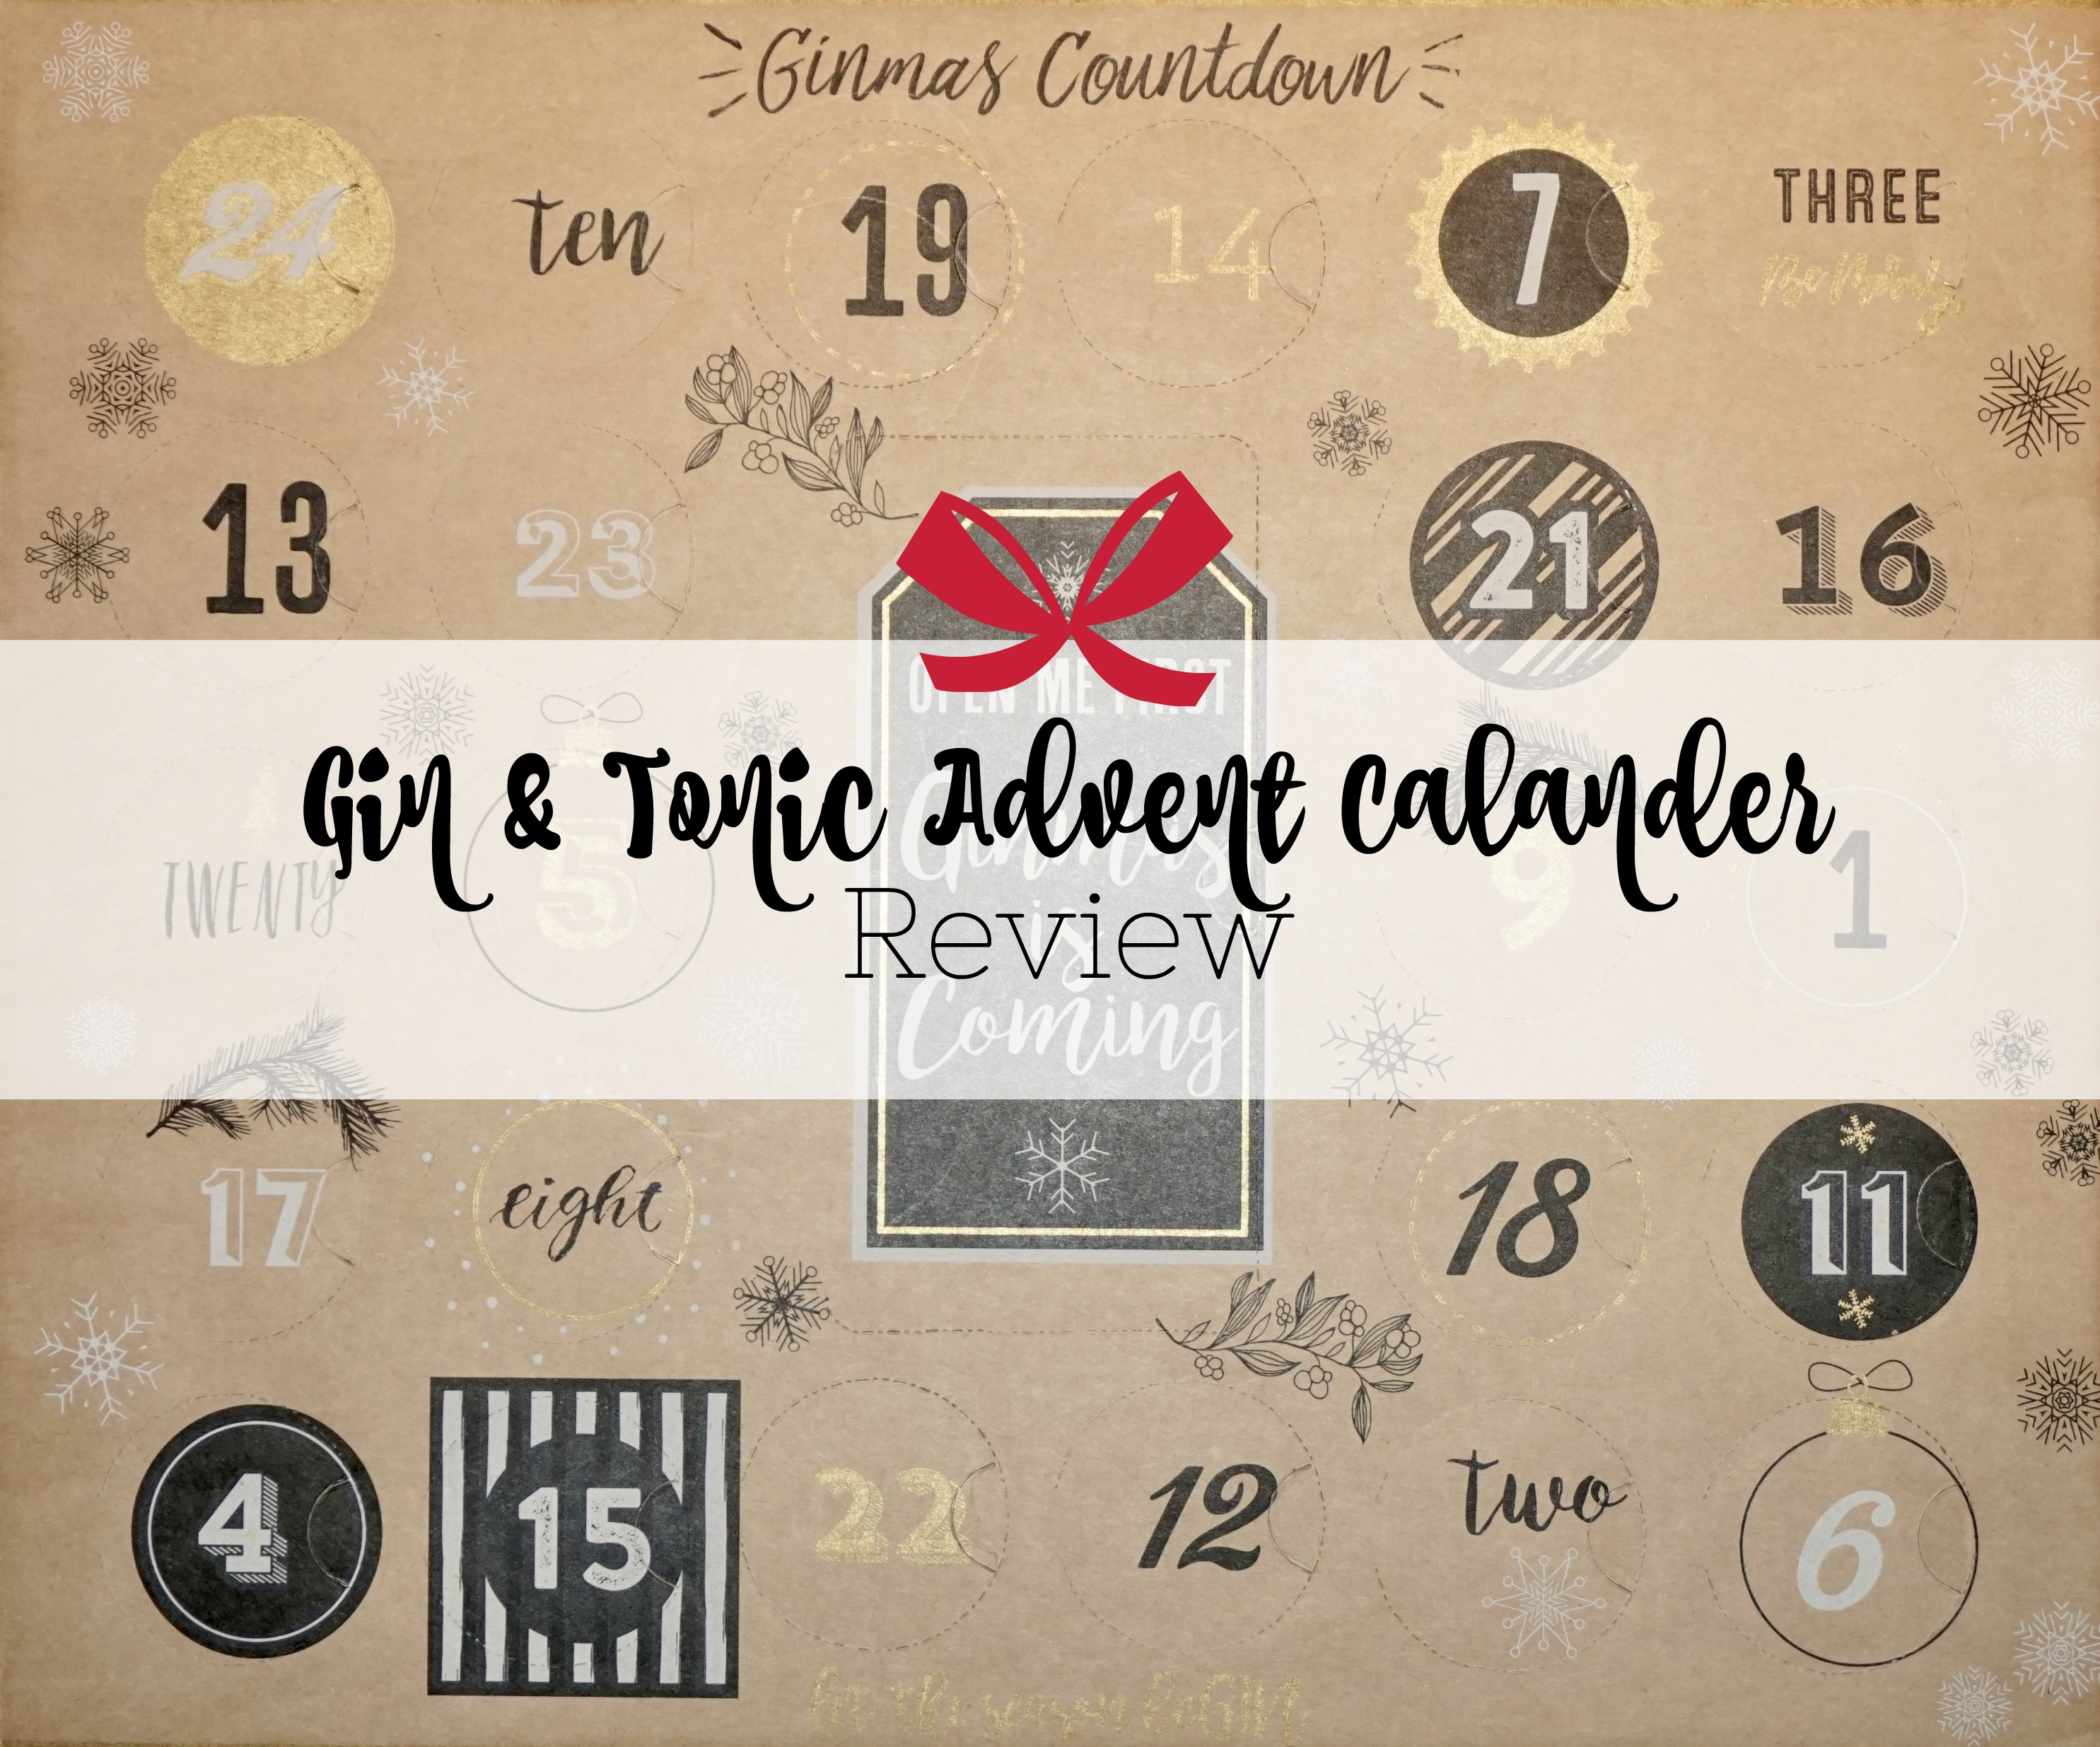 Gin and Tonic Advent Calendar Review